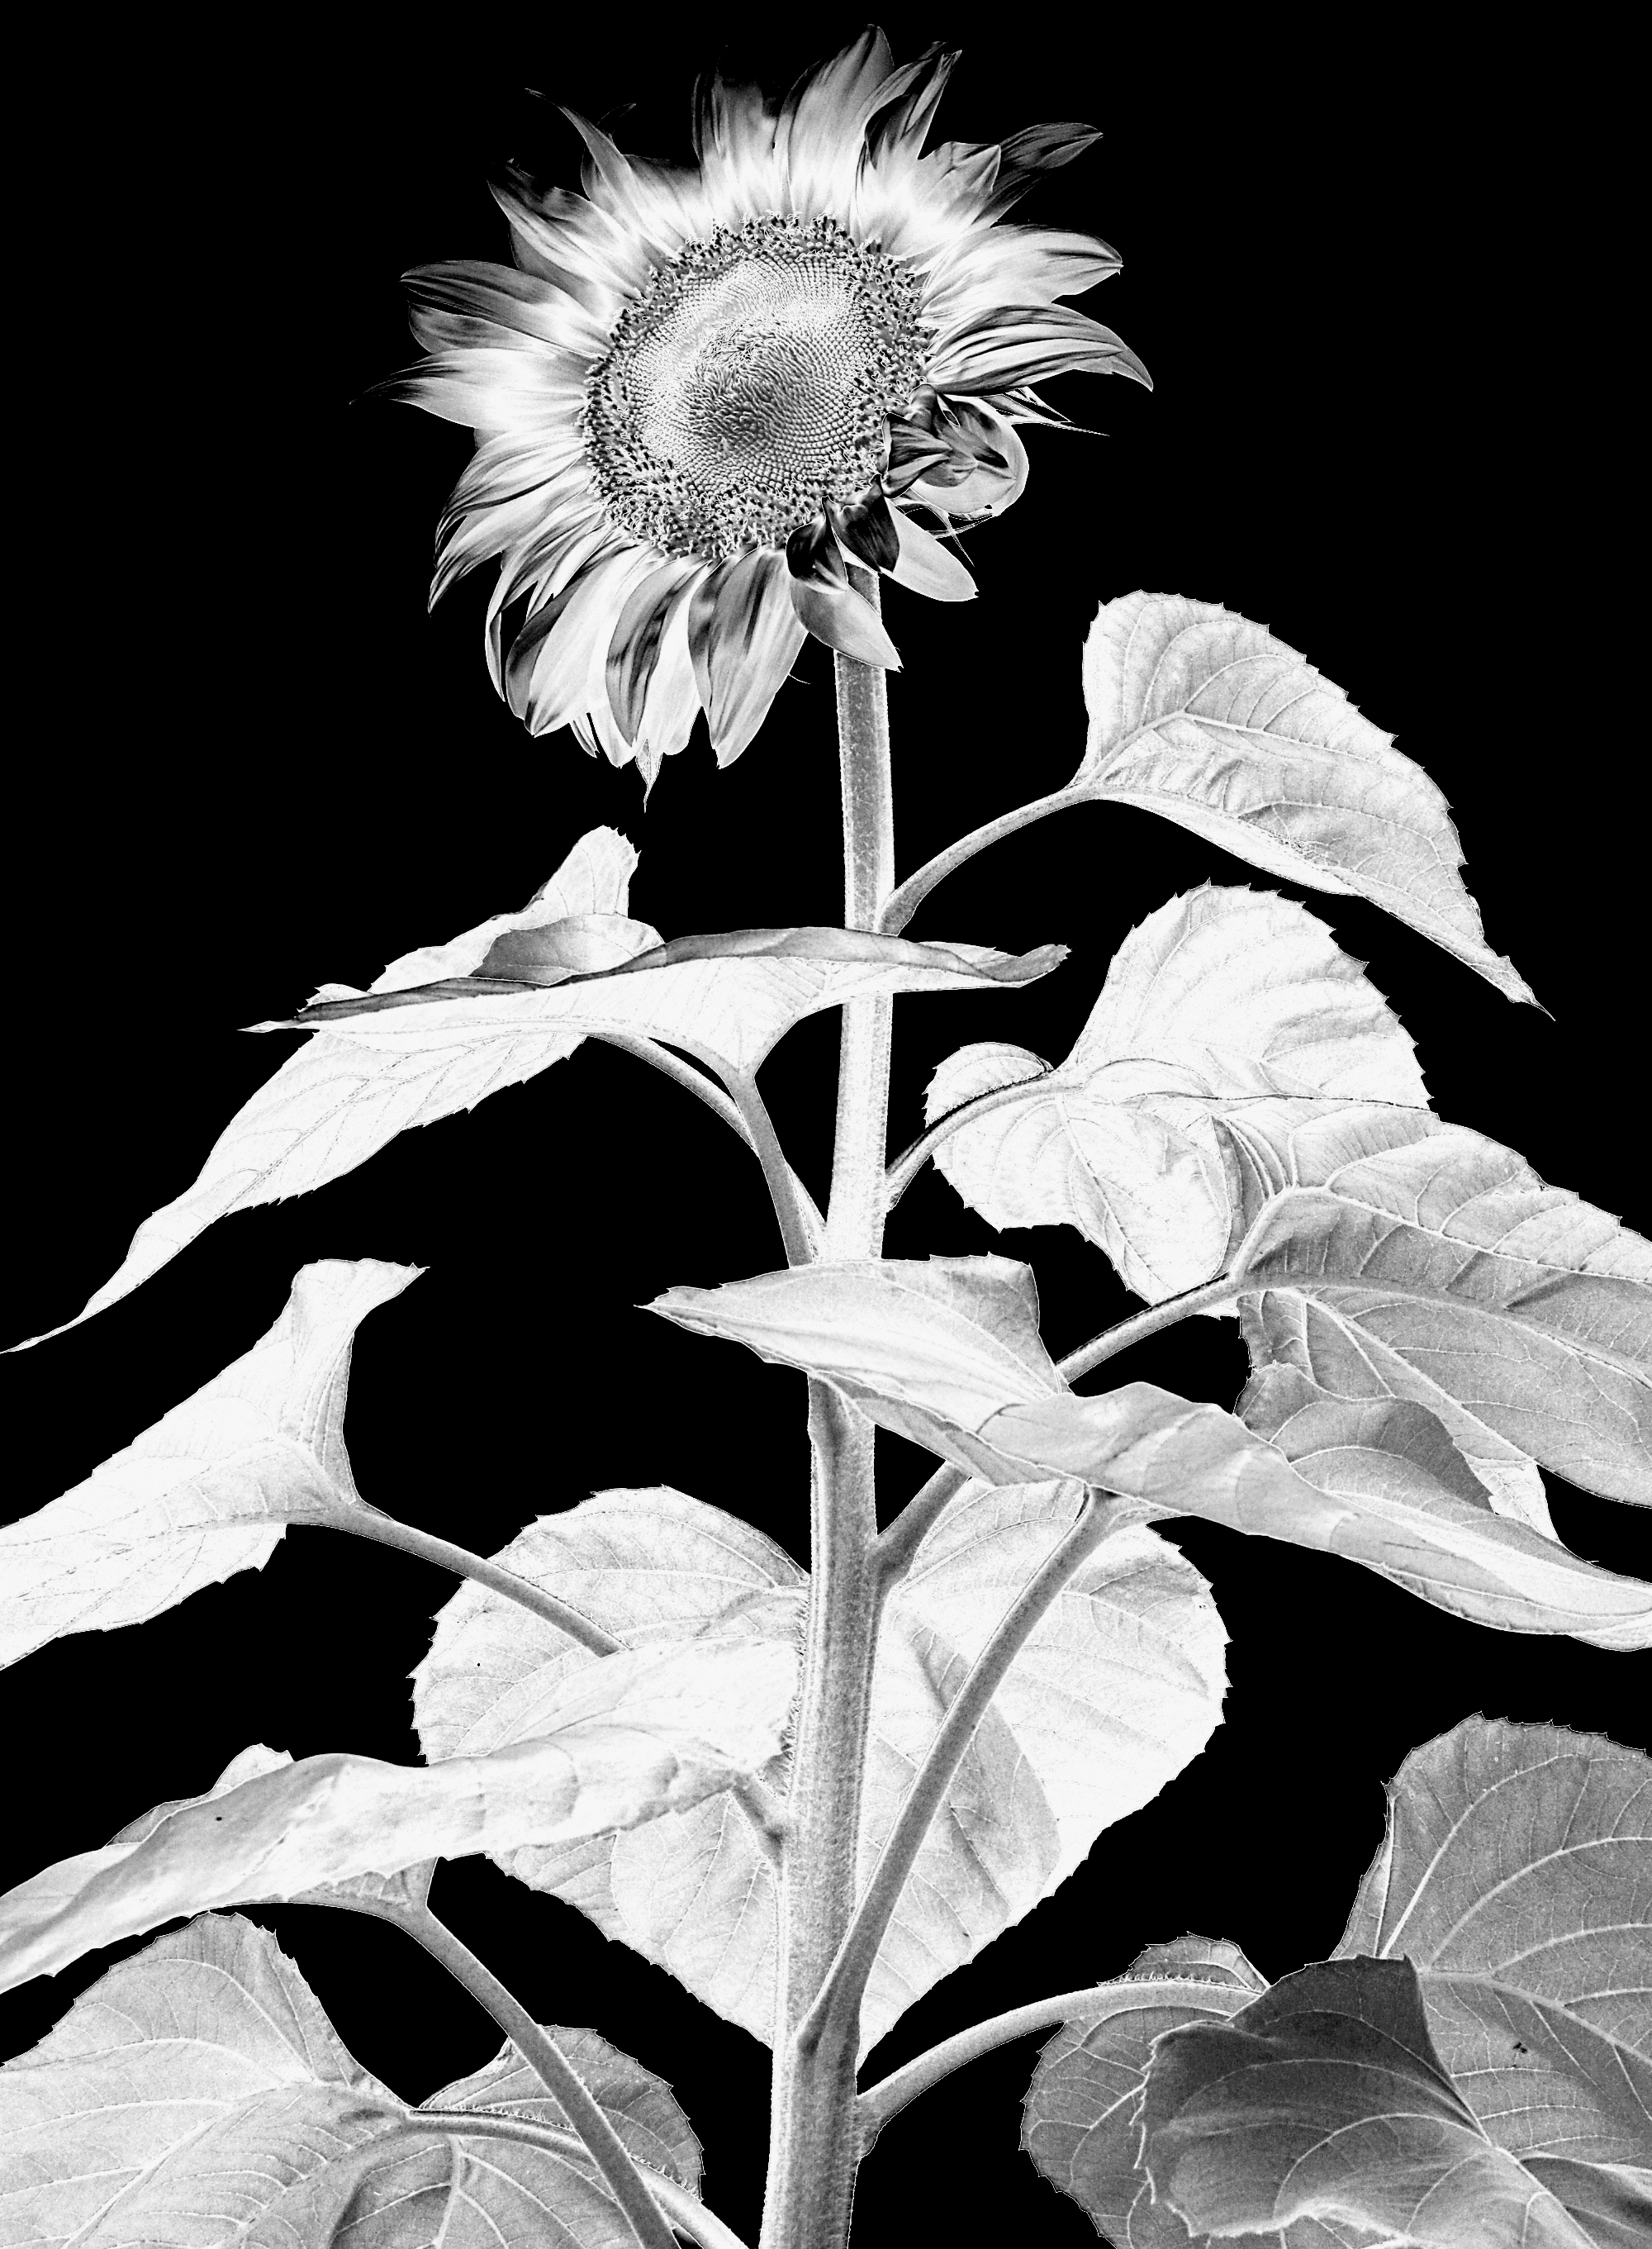 File:TAG Sunflower Solarised.jpg - Wikimedia Commons